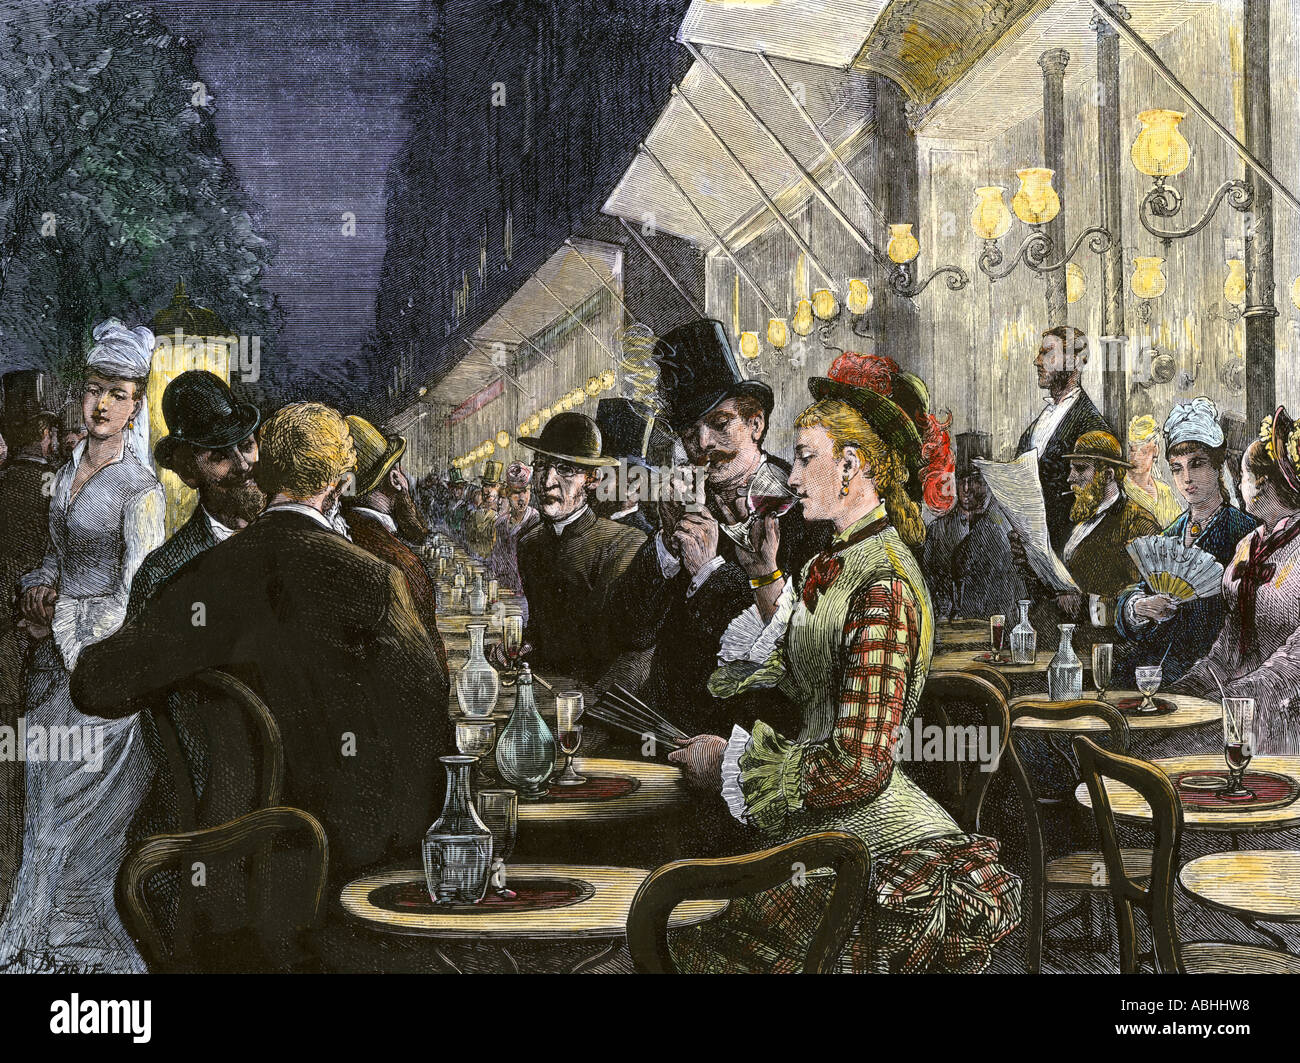 19th Century Paris Cafe High Resolution Stock Photography And Images Alamy